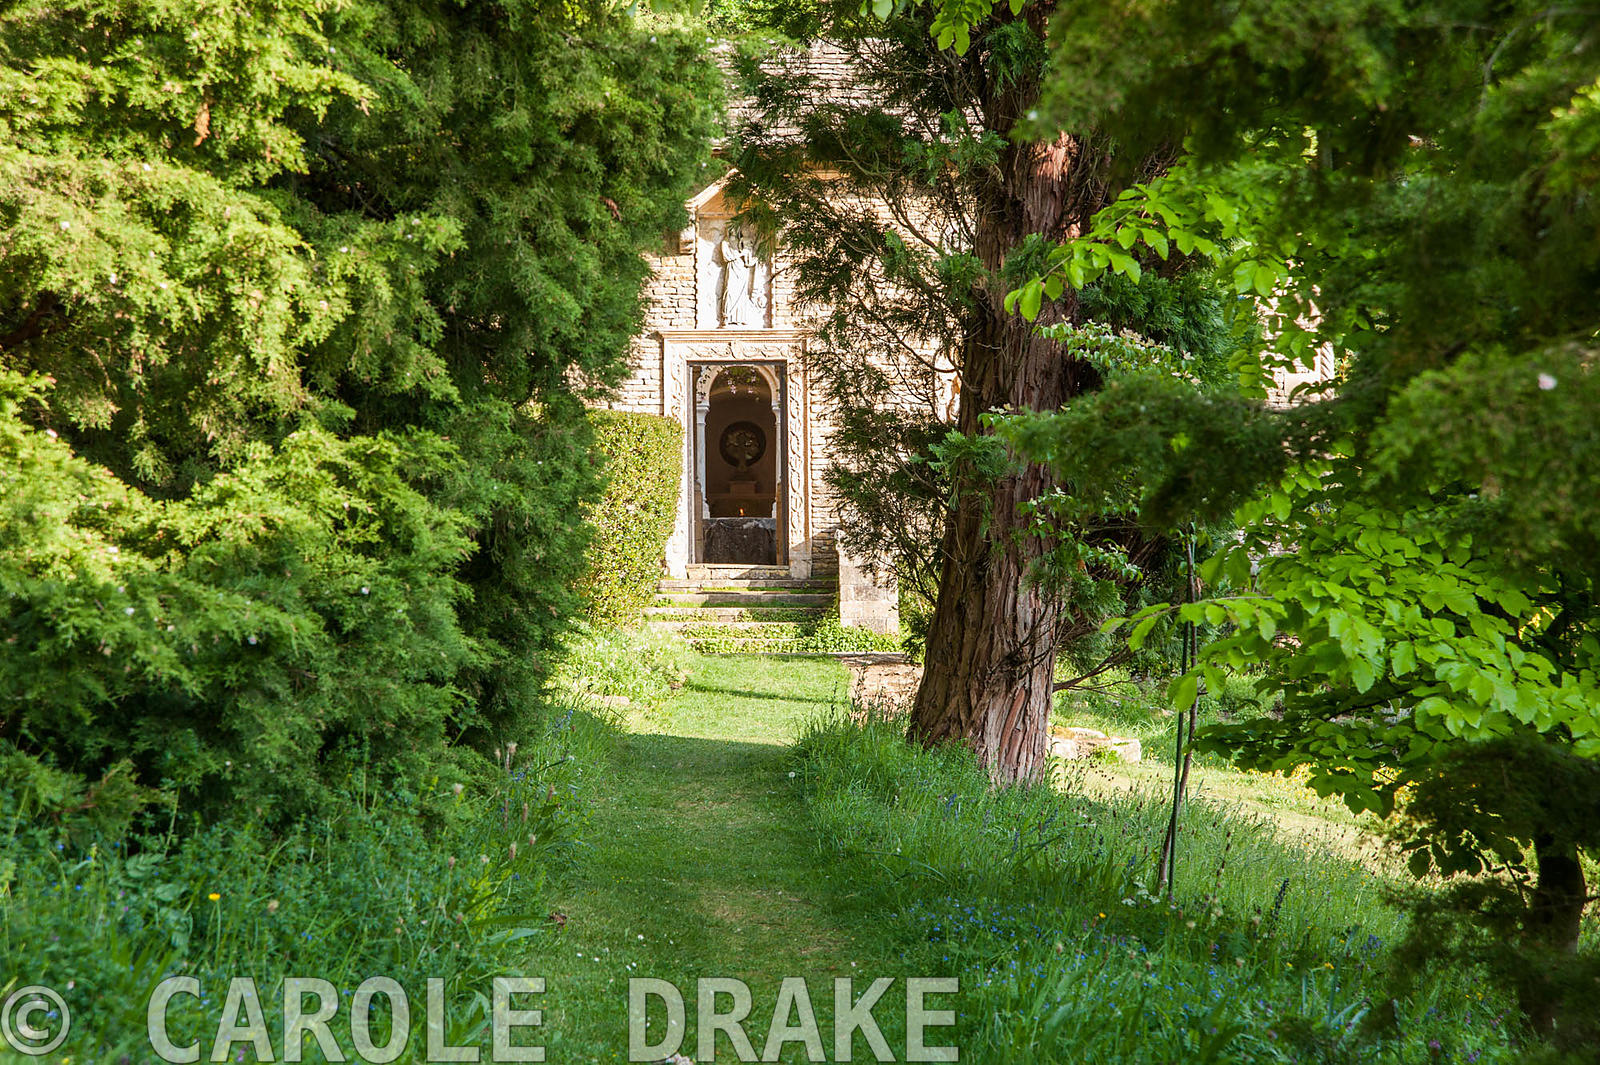 Grassy path between trees leads to the Cloisters. Iford Manor, Bradford-on-Avon, Wiltshire